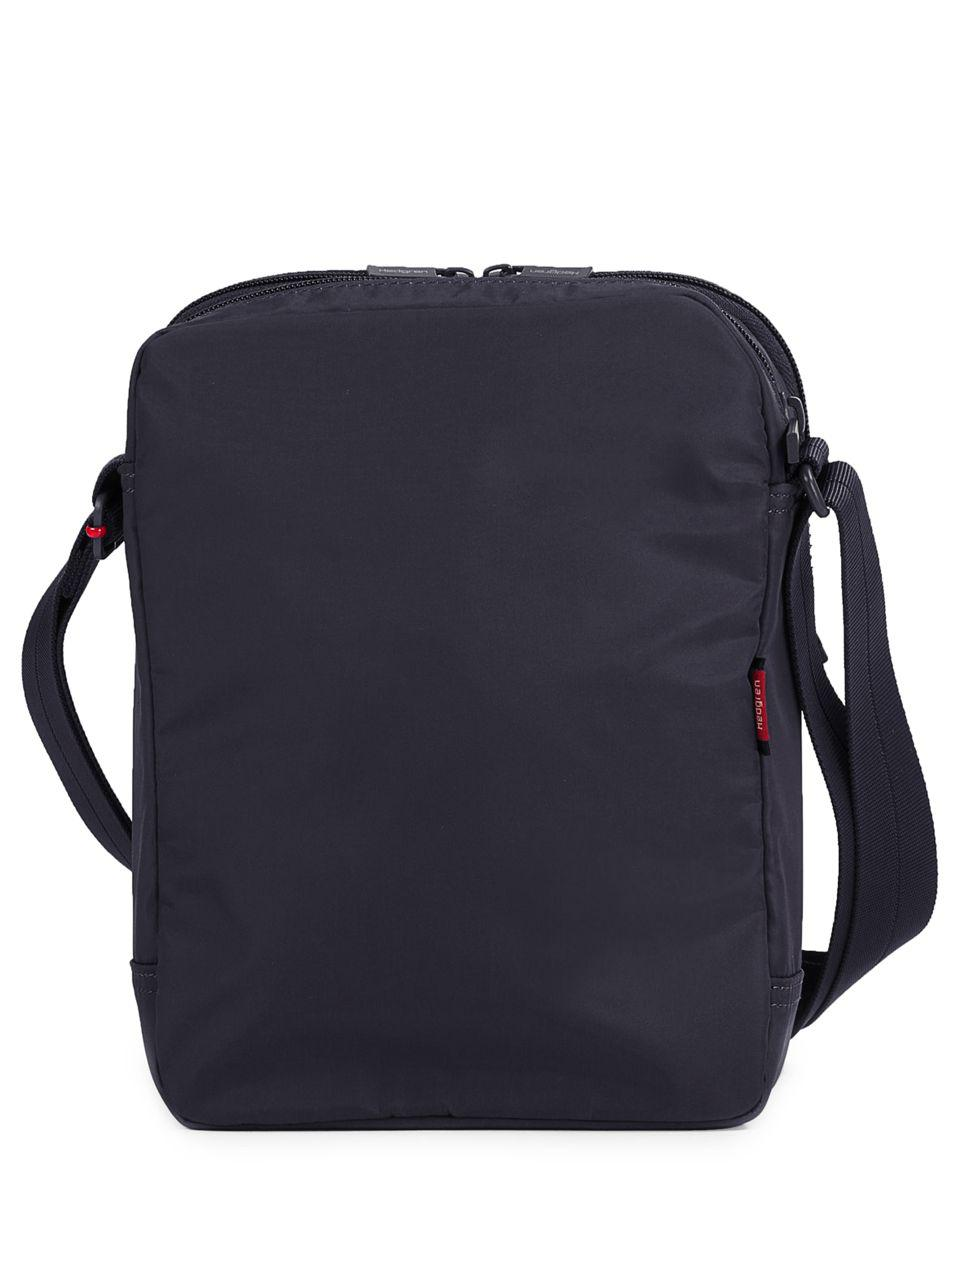 Hedgren Expresso Small Crossbody Bag in Black for Men - Lyst 46be88cde719c